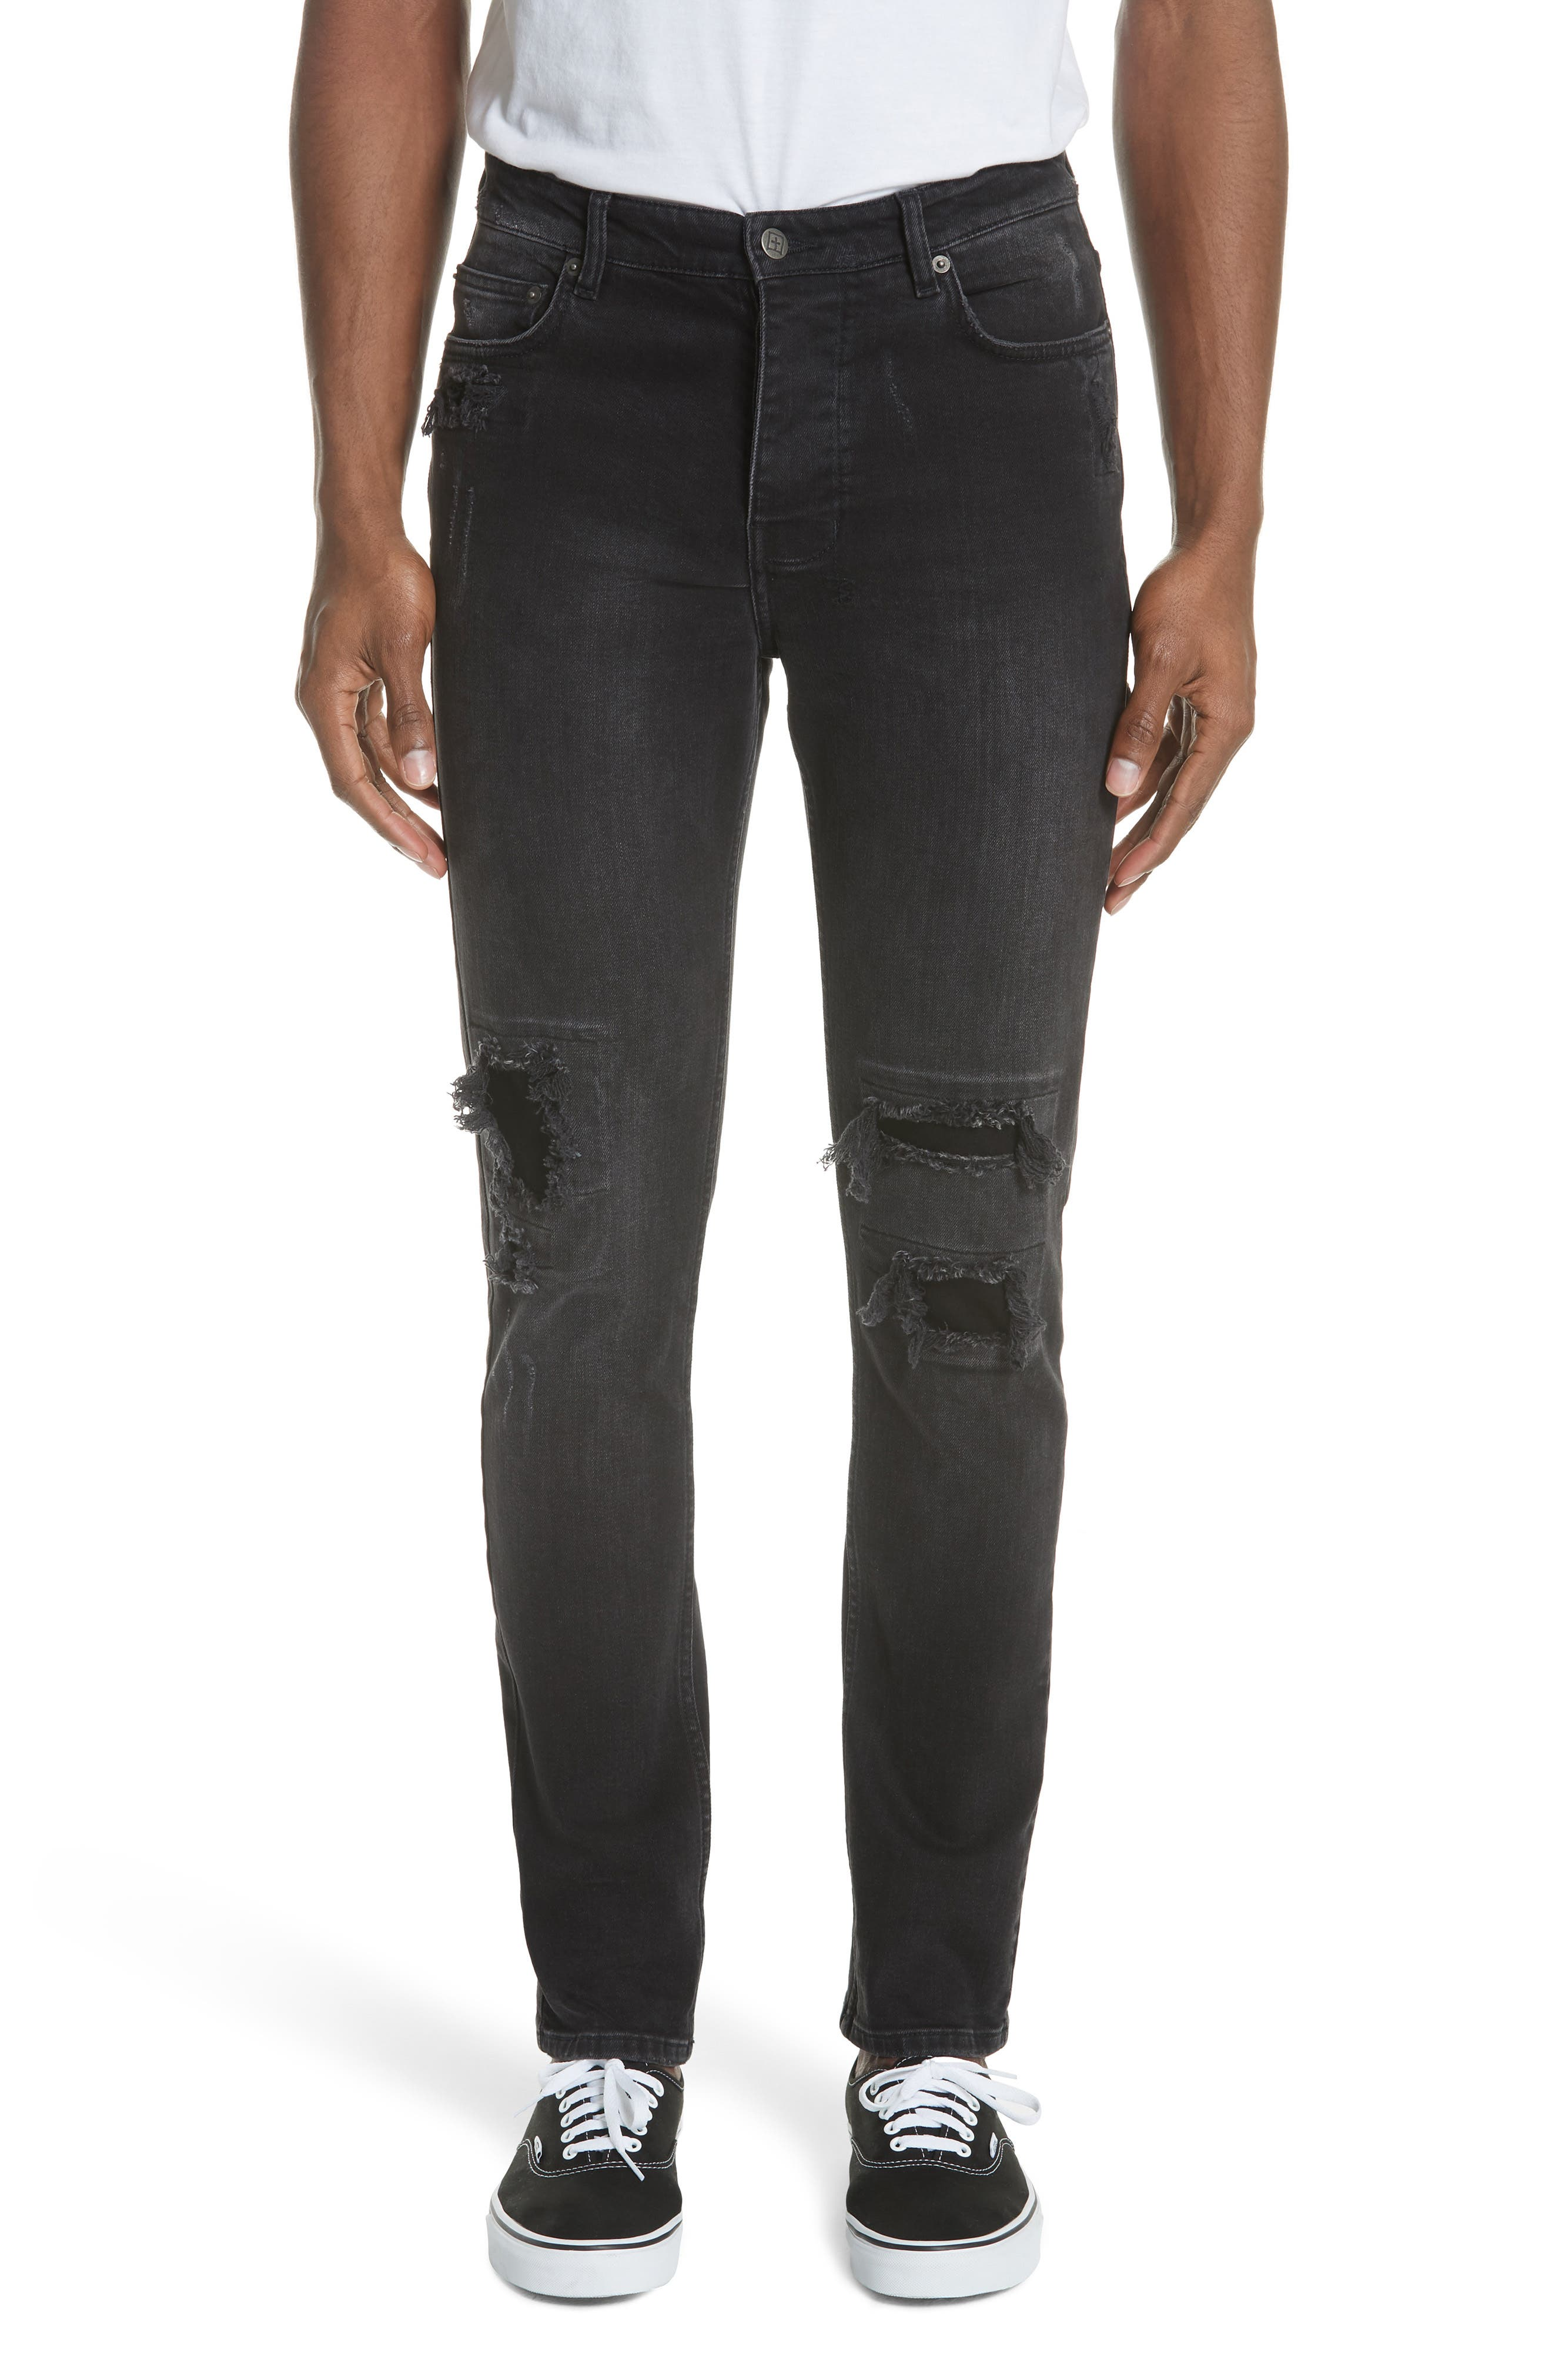 Chitch Boneyard Skinny Fit Jeans,                         Main,                         color, BLACK